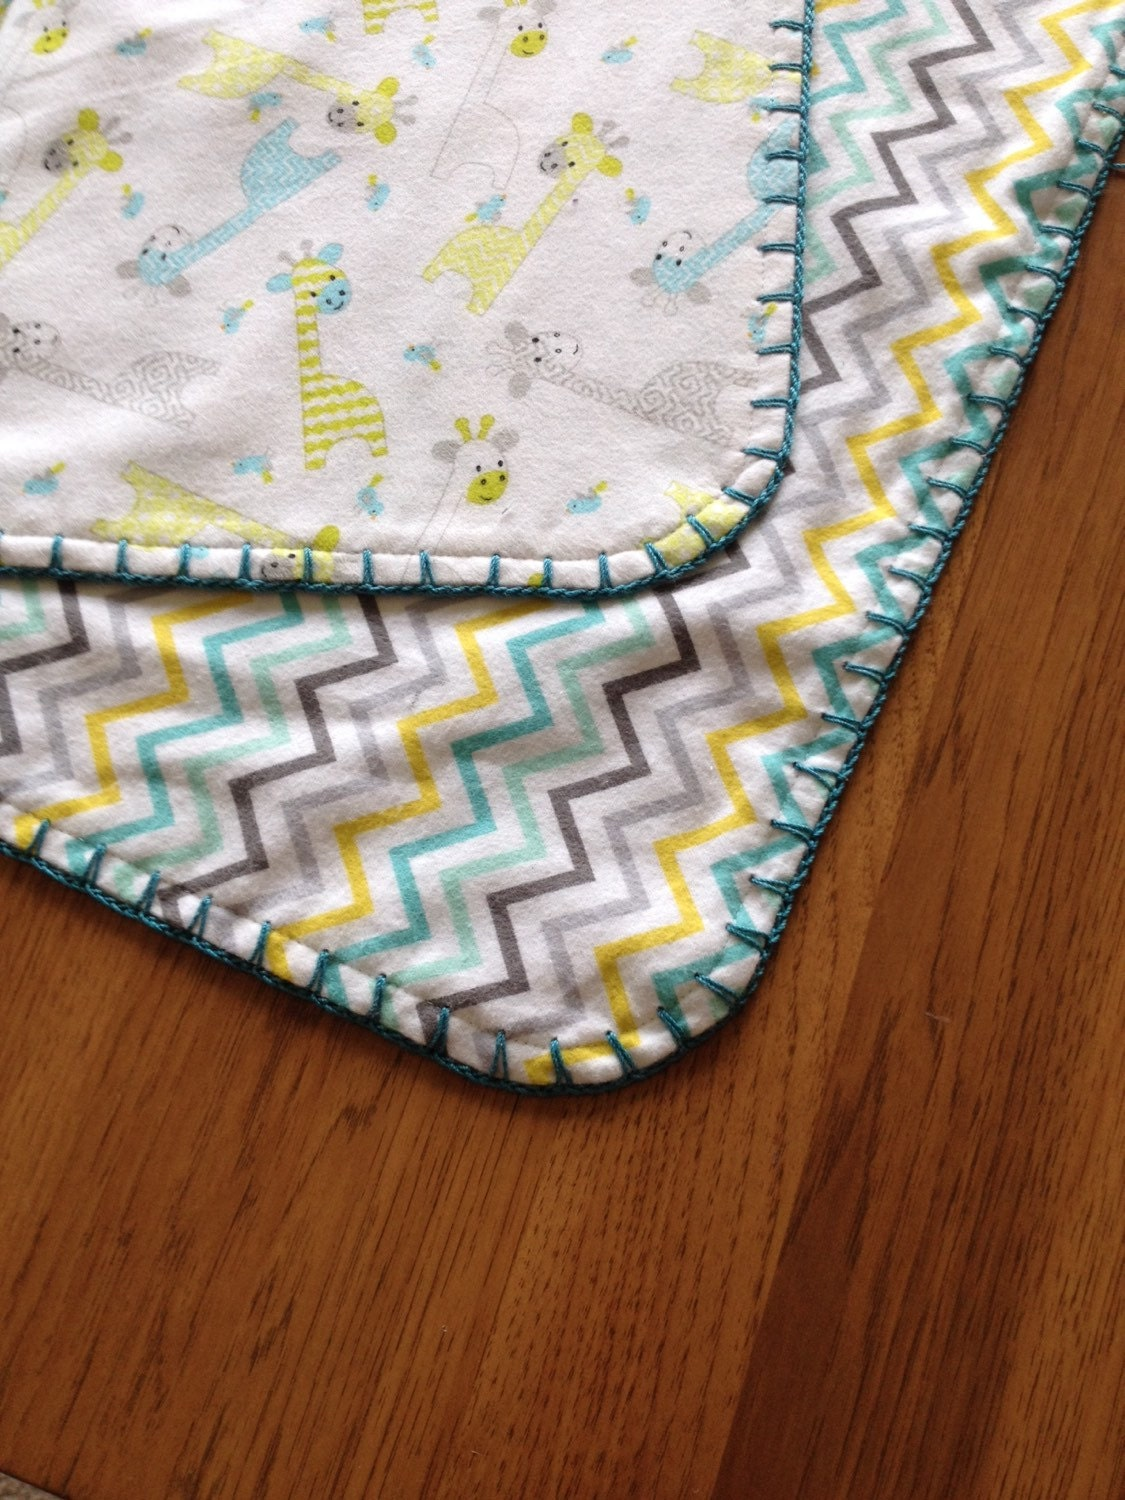 Flannel Baby Blanket-Crochet Edge-Baby by NiftyNikkel on Etsy